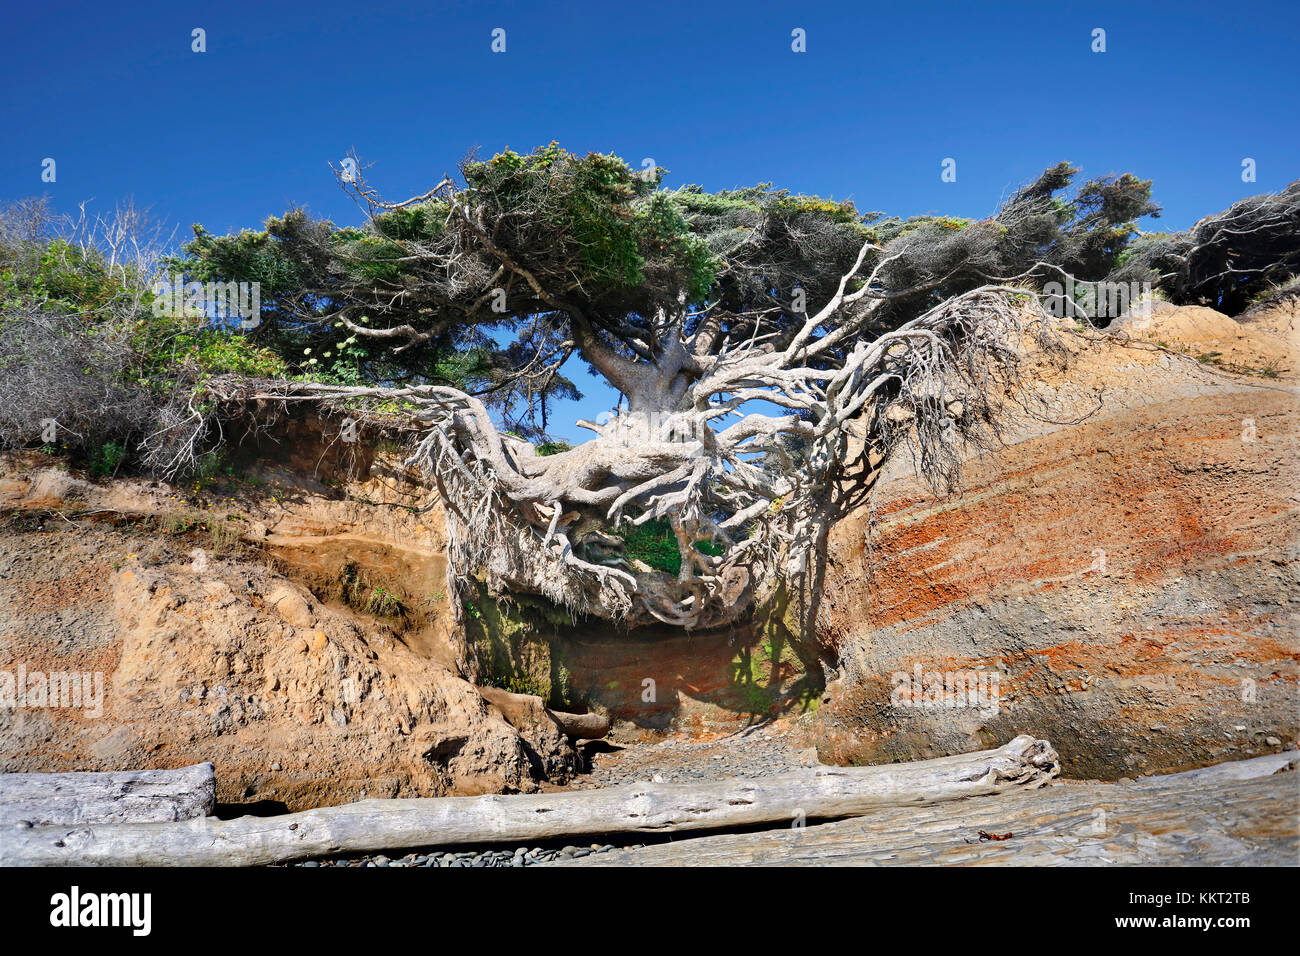 The Tree of Life, in Kakaloch,WA has nearly all of its roots exposed due to soil erosion, yet it remains upright Stock Photo